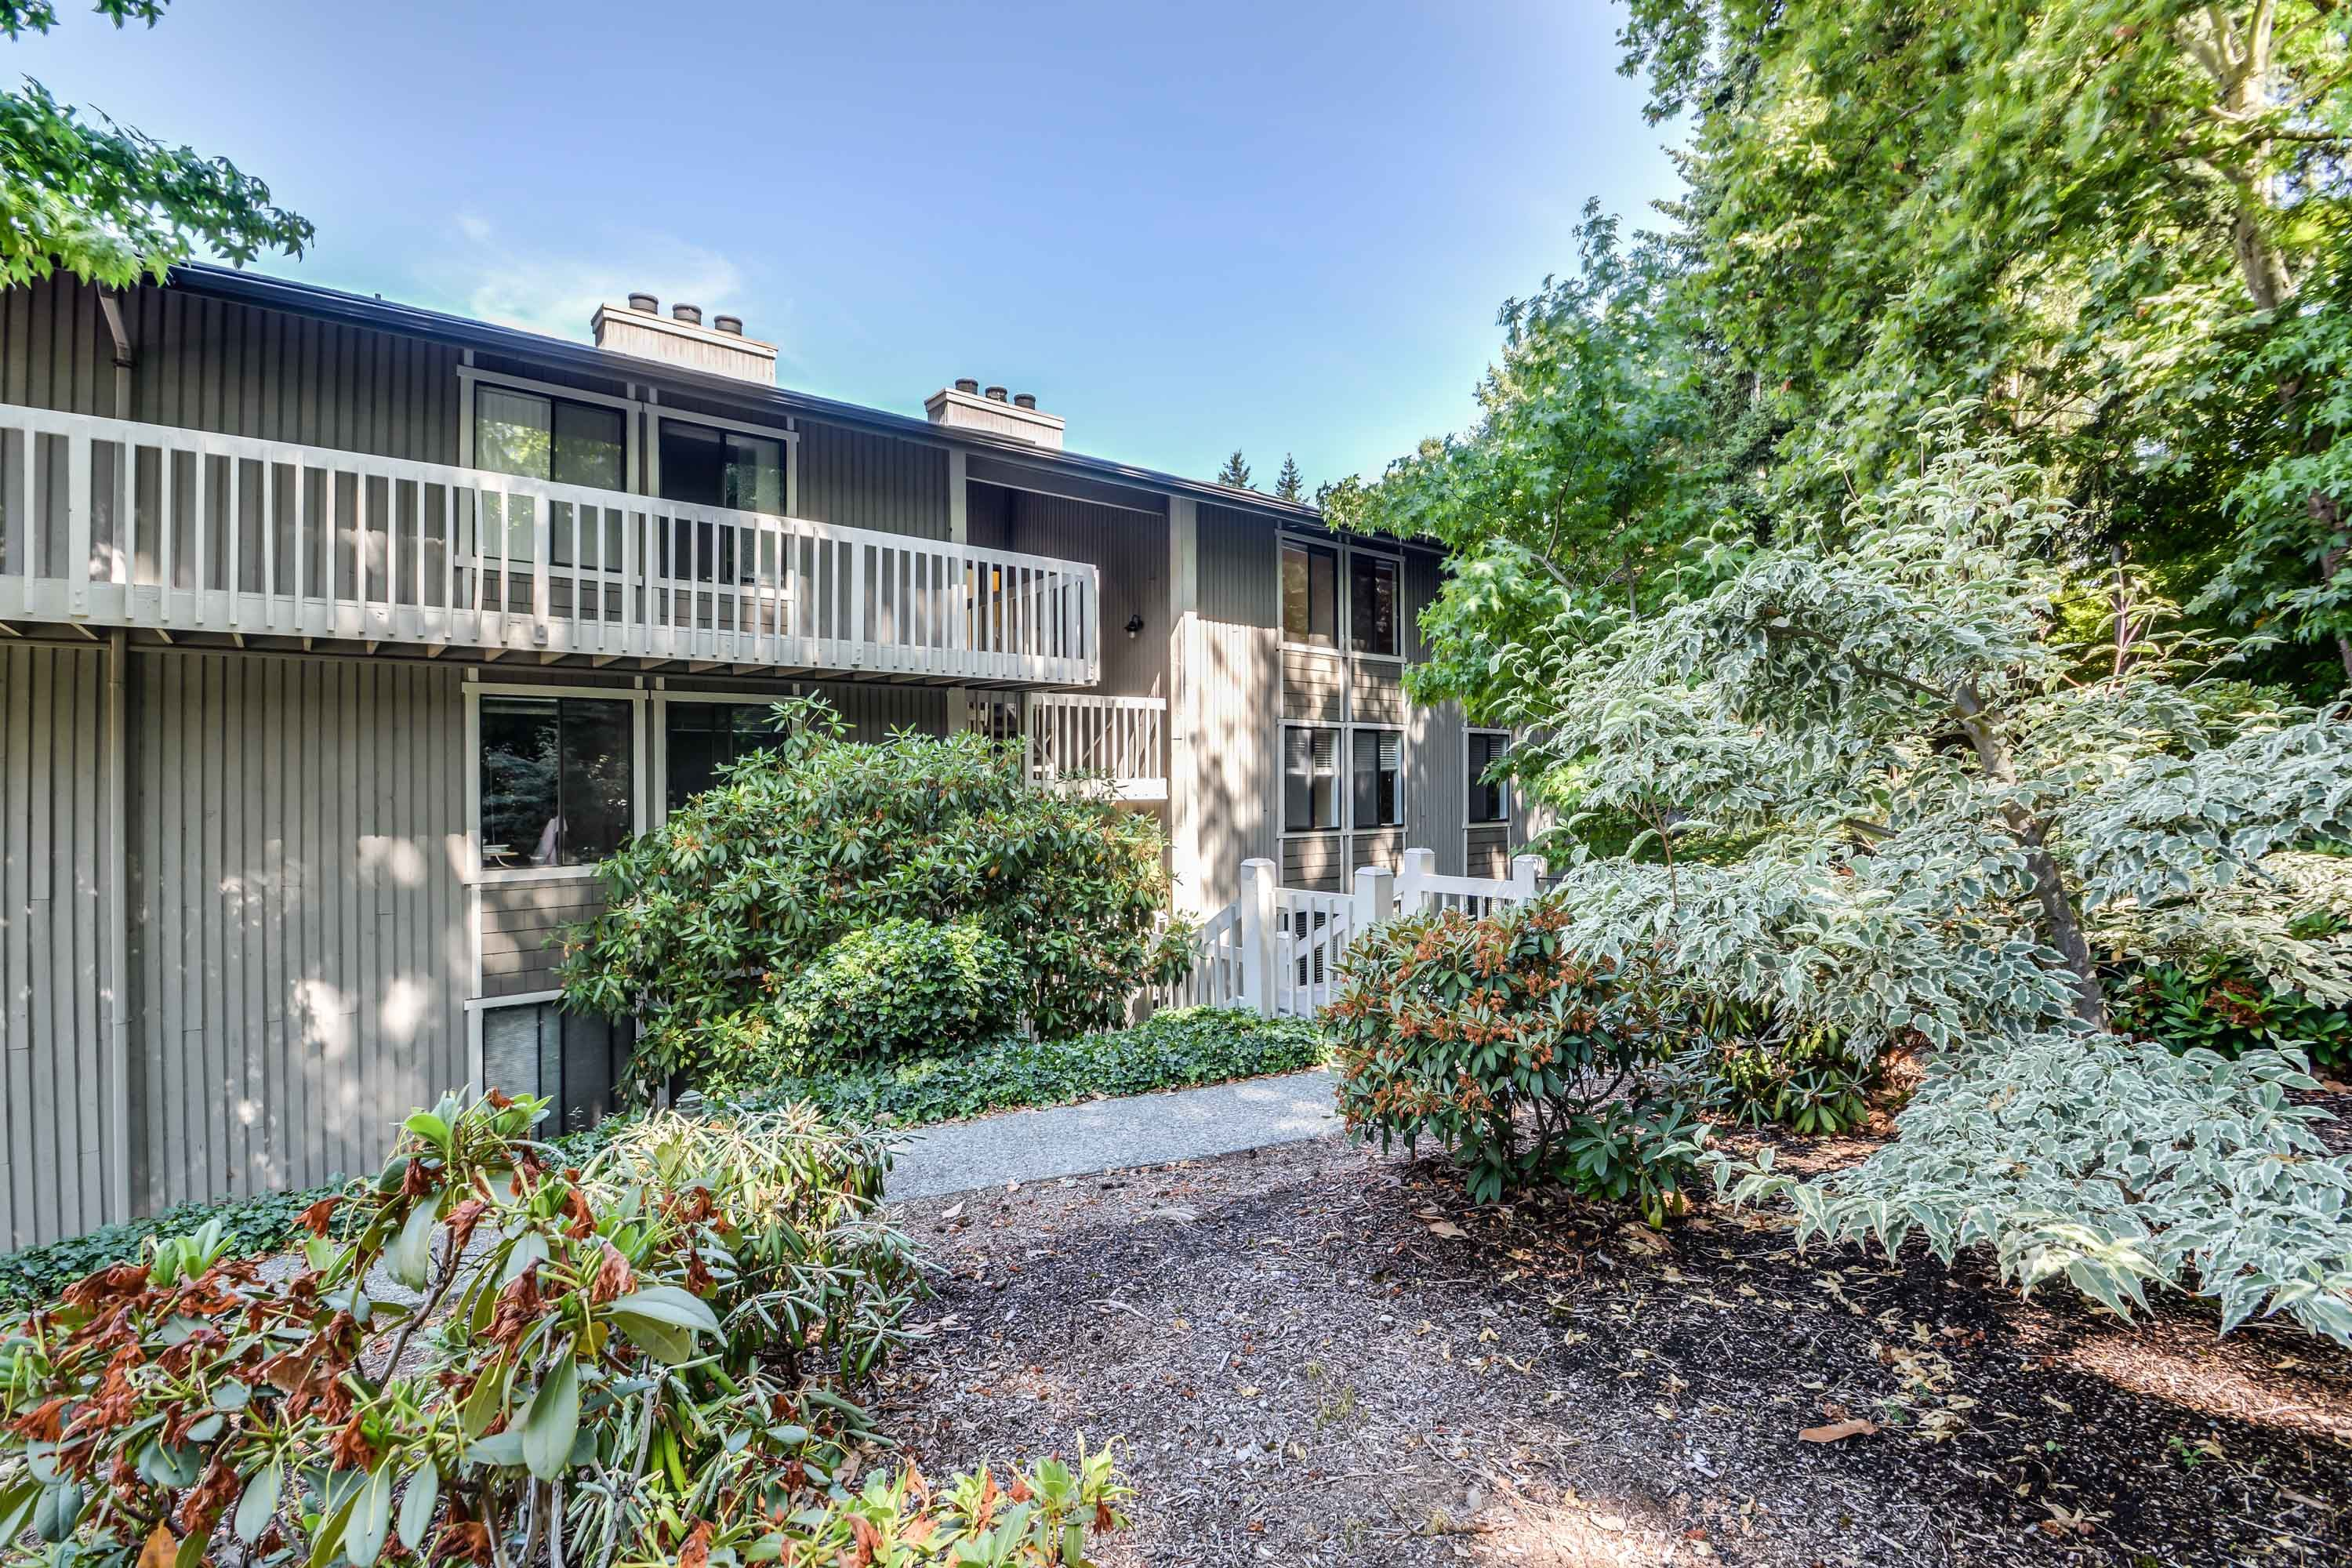 For details contact Laurie Tarantola at 425-246-8633. Downtown Mercer Island with a view!. Travertine entry greets you in this wonderful top floor 3 bed, 2 bath unit.